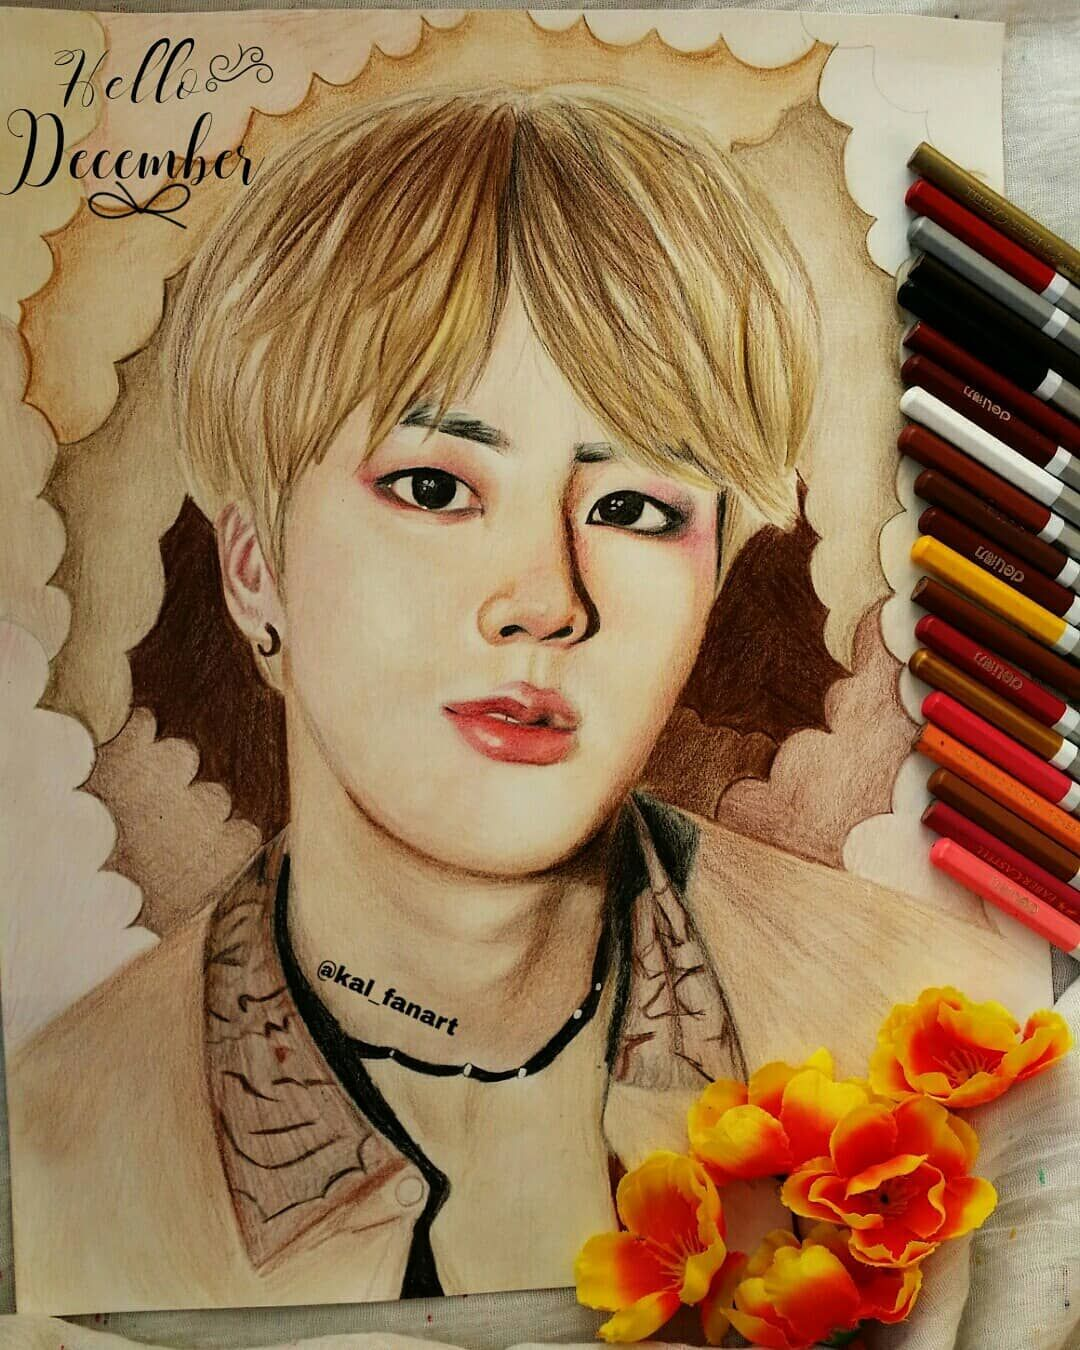 Happy Jin Day Happy Birthday I Hope All Your Birthday Wishes And Dreams Come True Btsfanart Btsart Bts Fanart Birthday Wishes It S Your Birthday